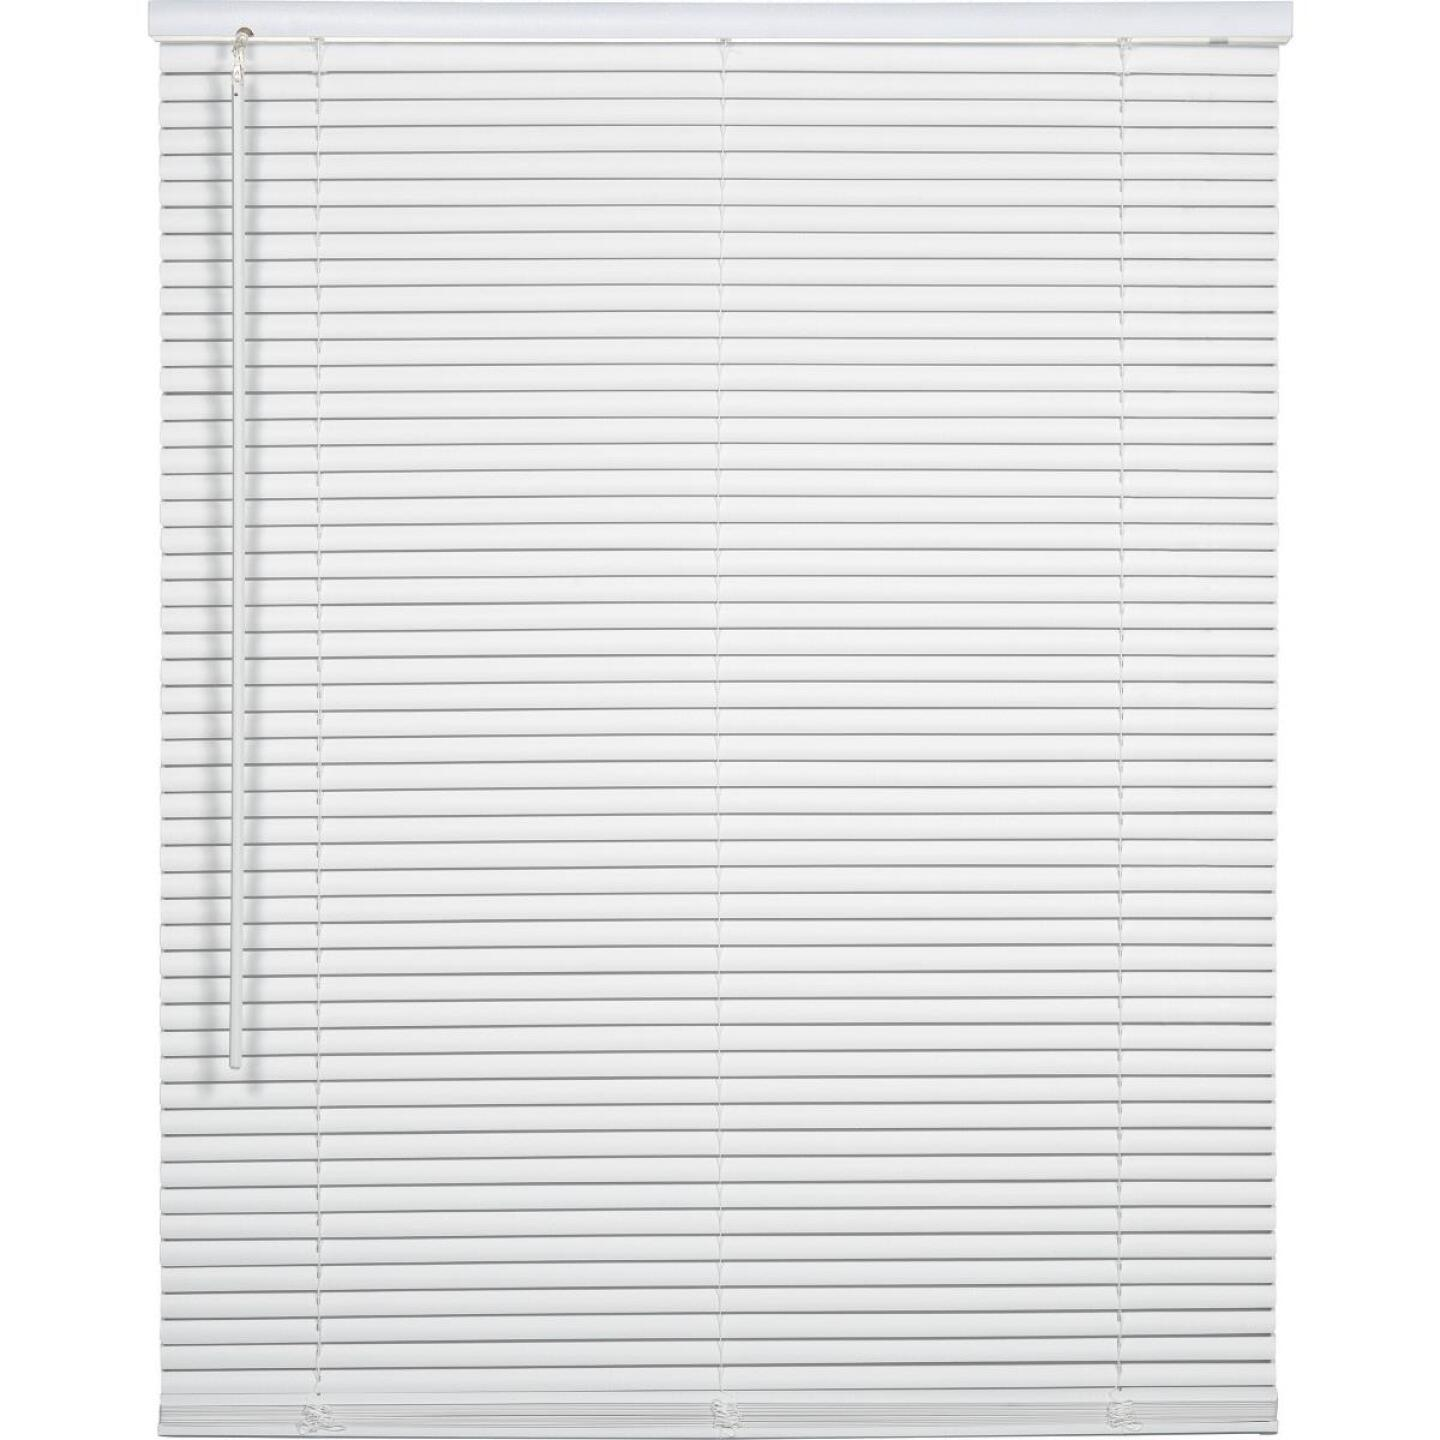 Home Impressions 23 In. x 64 In. x 1 In. White Vinyl Light Filtering Cordless Mini Blind Image 1